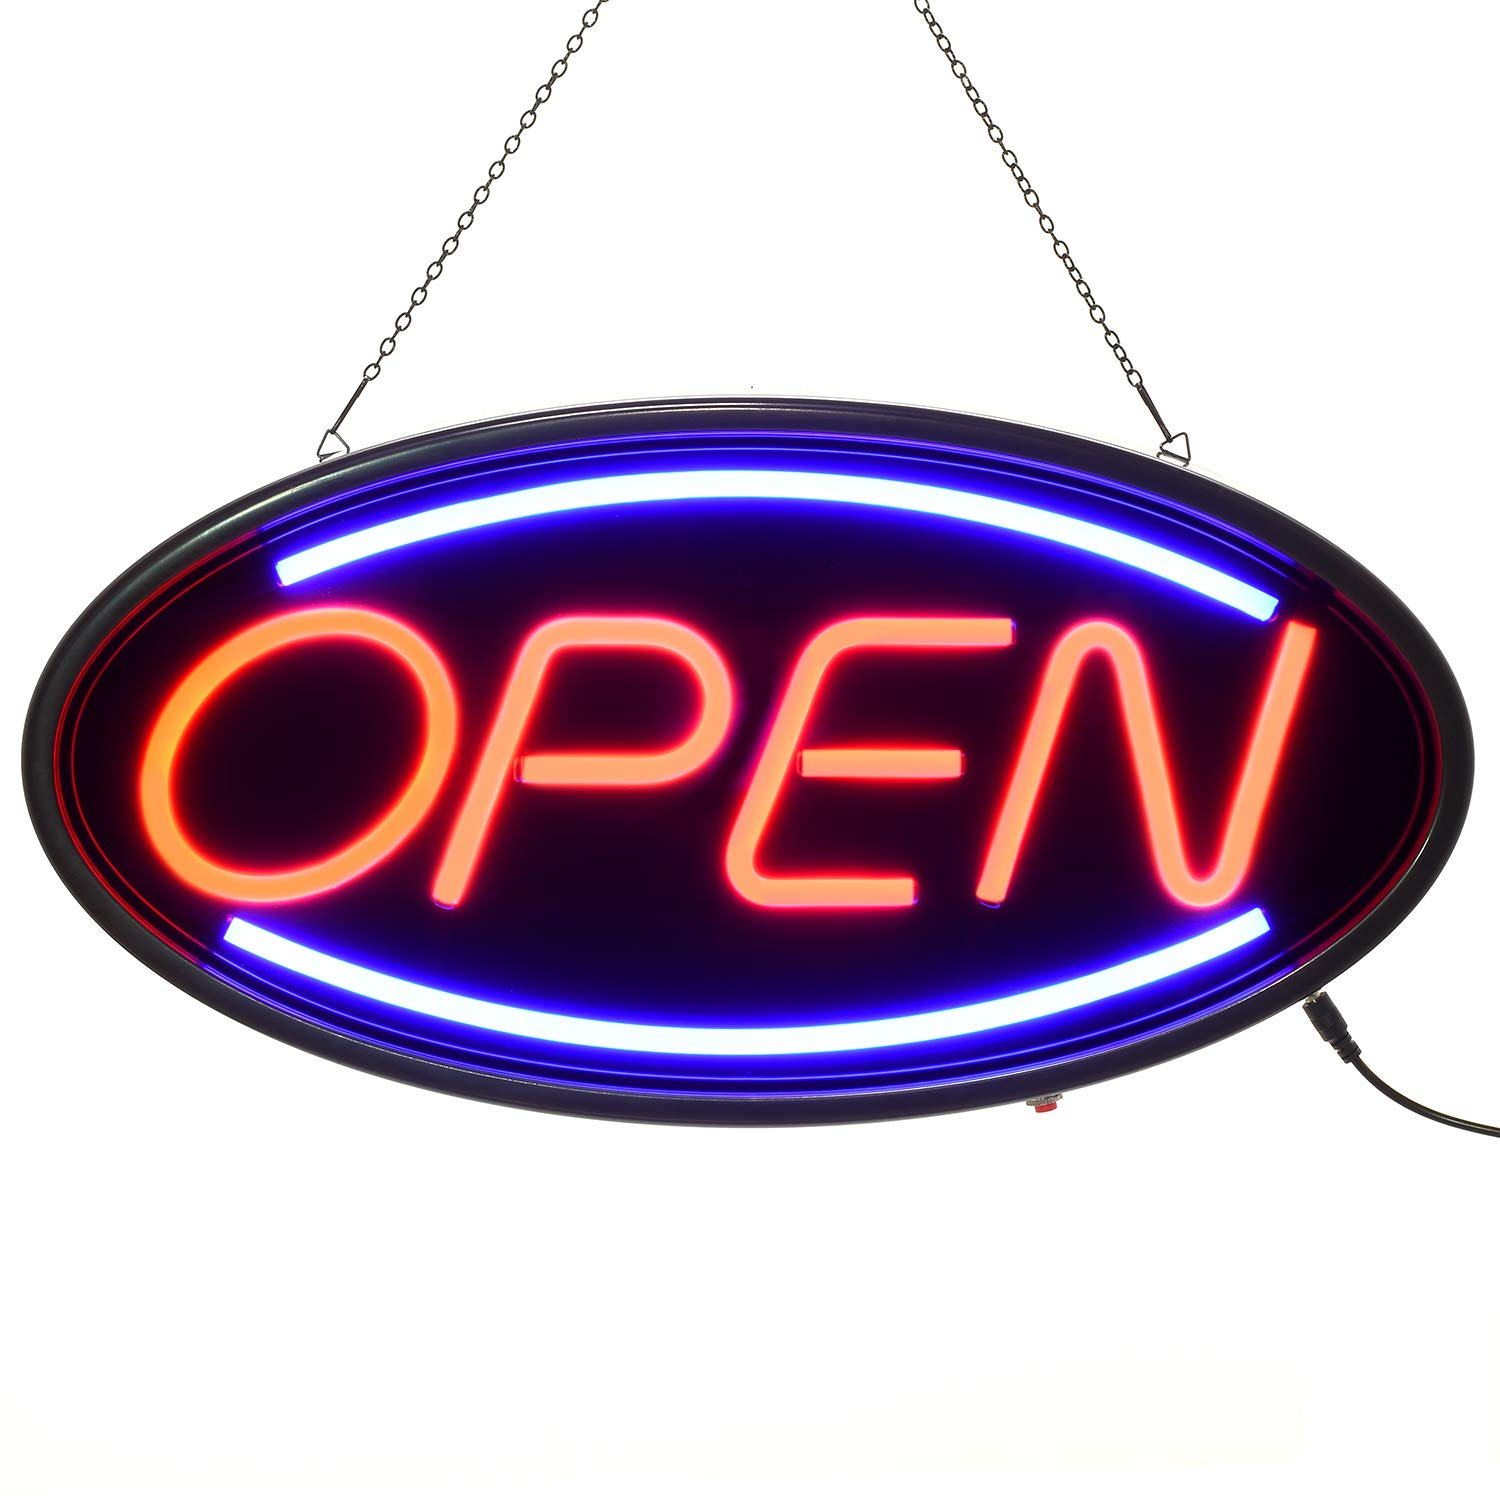 Doingart LED Open Sign, 19''x10'' Business Neon Open Sign with 3 Lighting Modes Steady/Flash/Flowing, Electronic Lighted Sign for Business, Walls, Window, Store, bar, Hotel